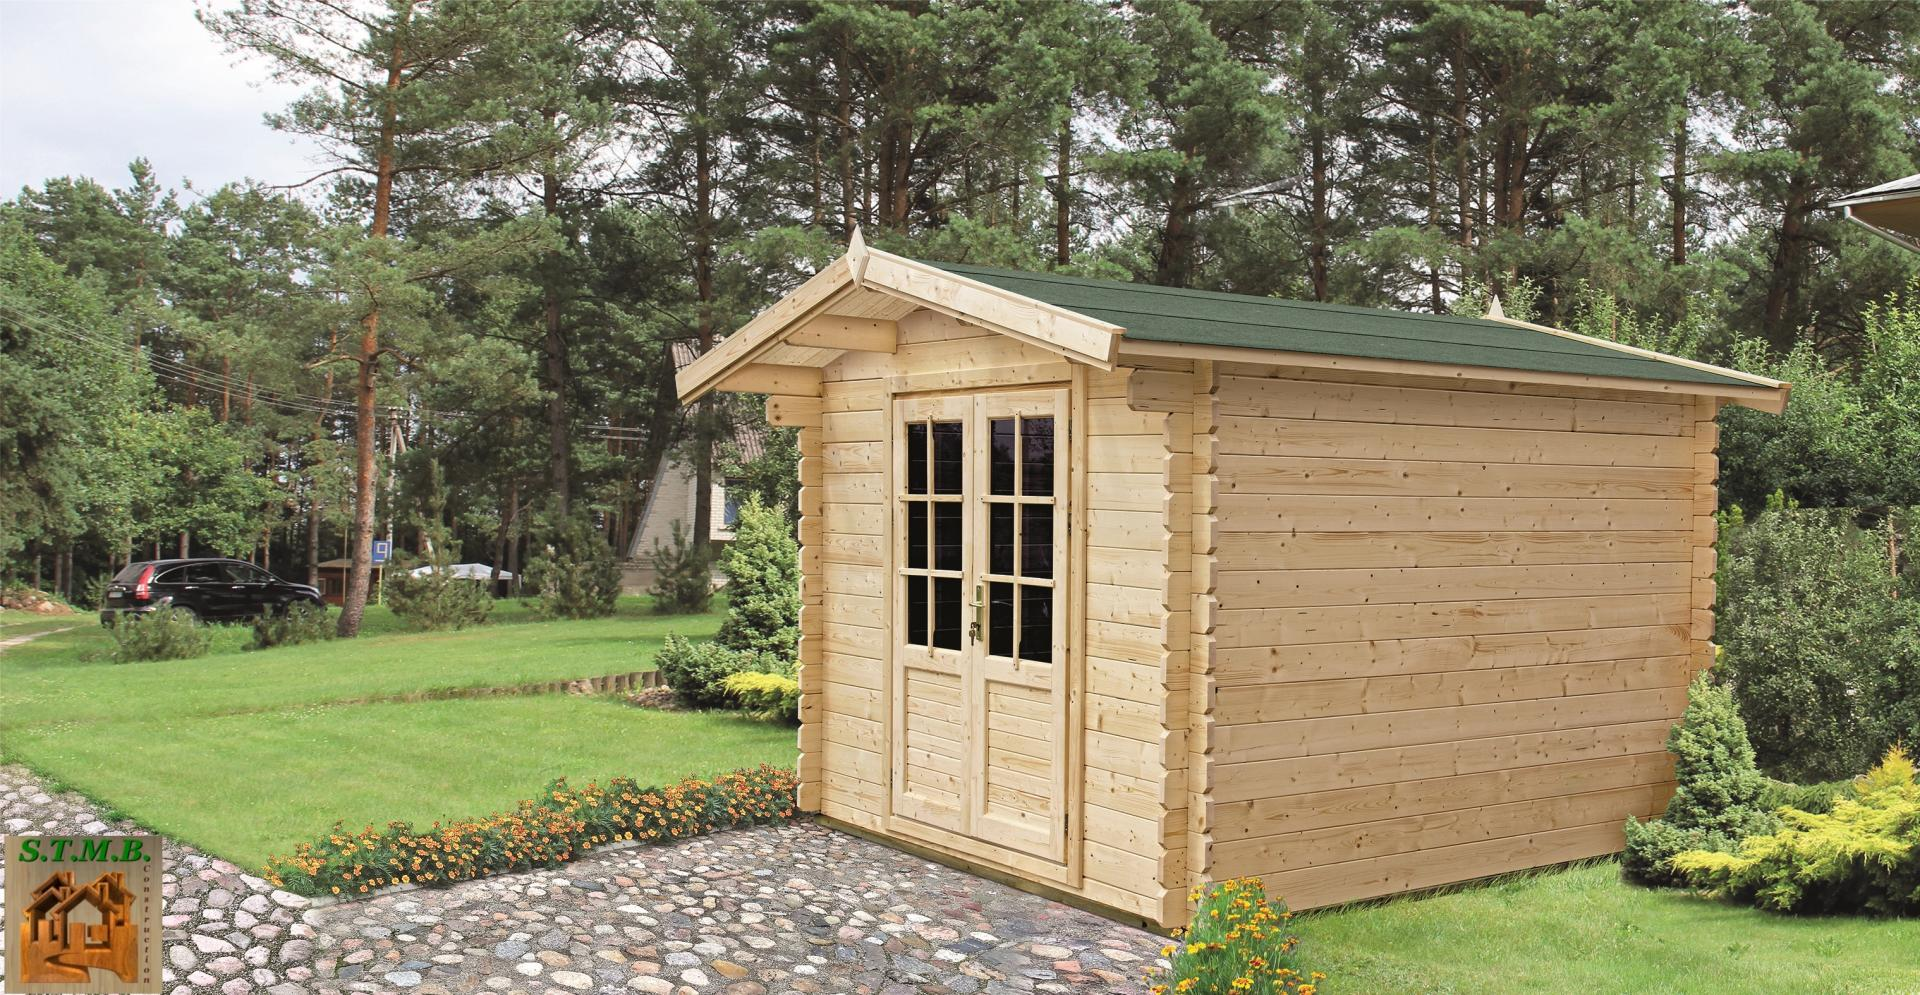 Ph1 kit chalet jardin bois olivier 7 9m 44mm stmb construction